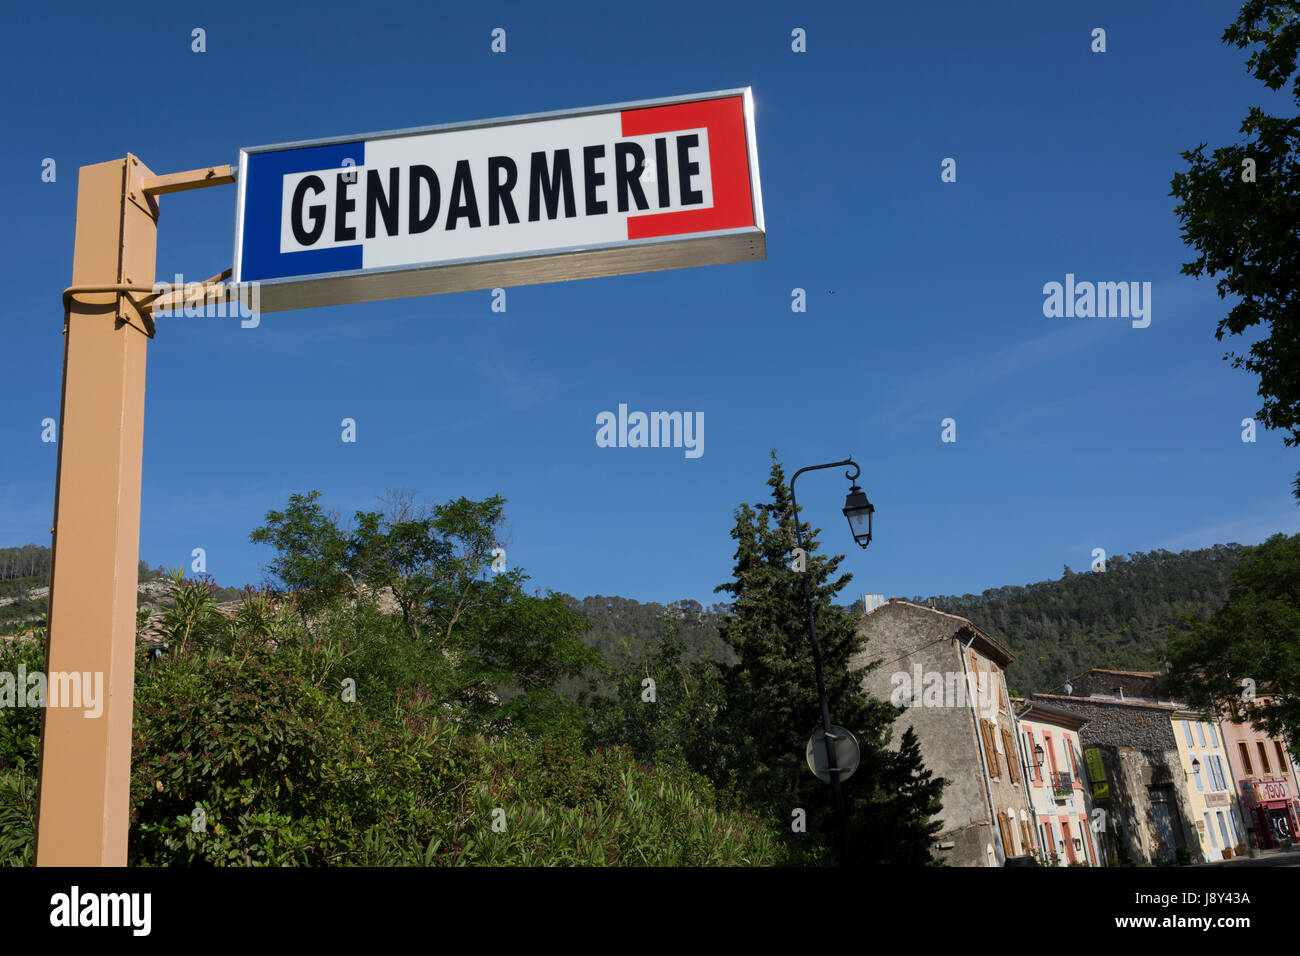 The signpost for the local Gendarmerie in blue skies, on 23rd May, 2017, in Lagrasse, Languedoc-Rousillon, south - Stock Image